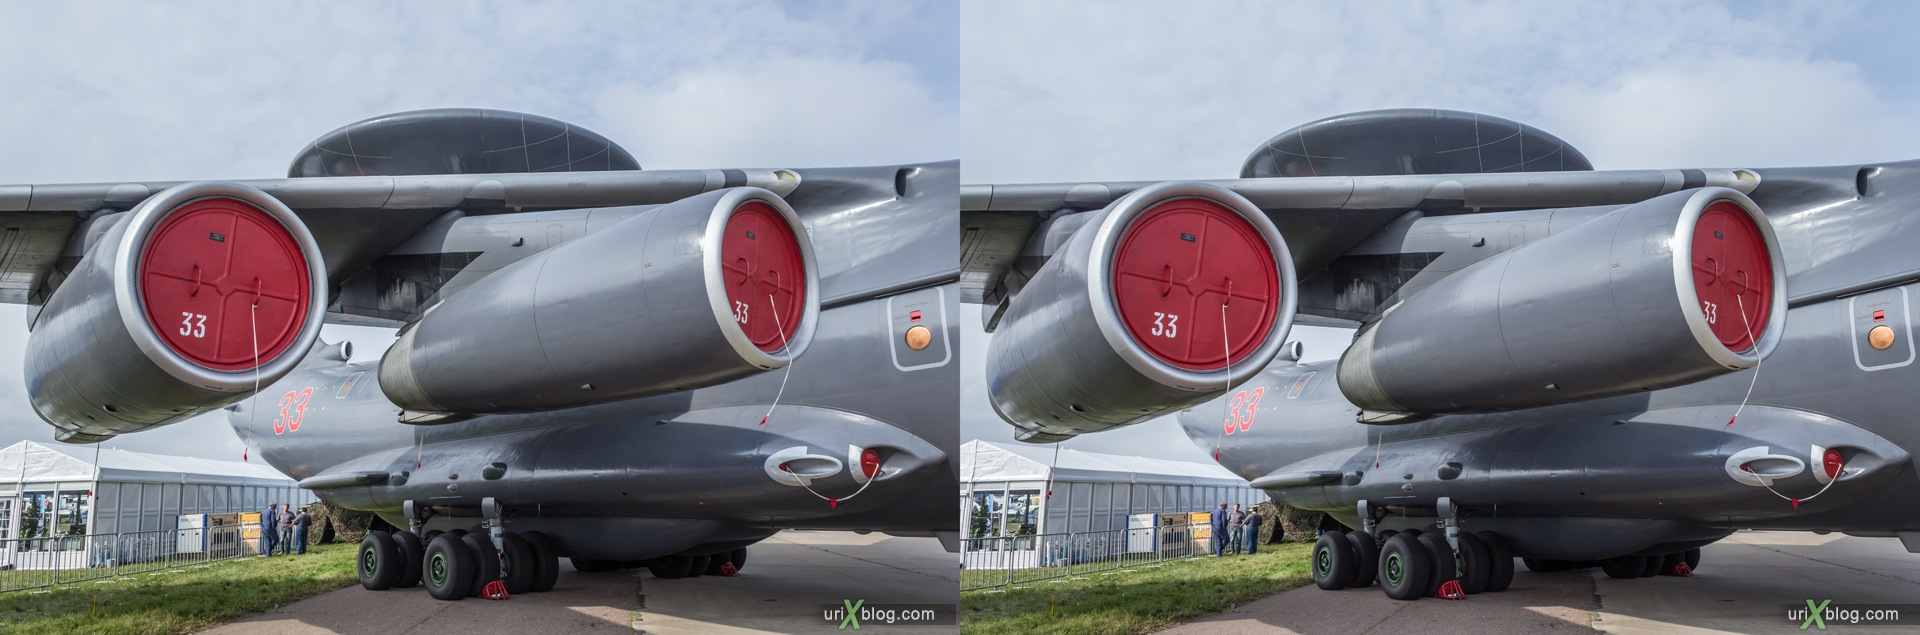 2013, A-50, MAKS, International Aviation and Space Salon, Russia, Ramenskoye airfield, airplane, 3D, stereo pair, cross-eyed, crossview, cross view stereo pair, stereoscopic